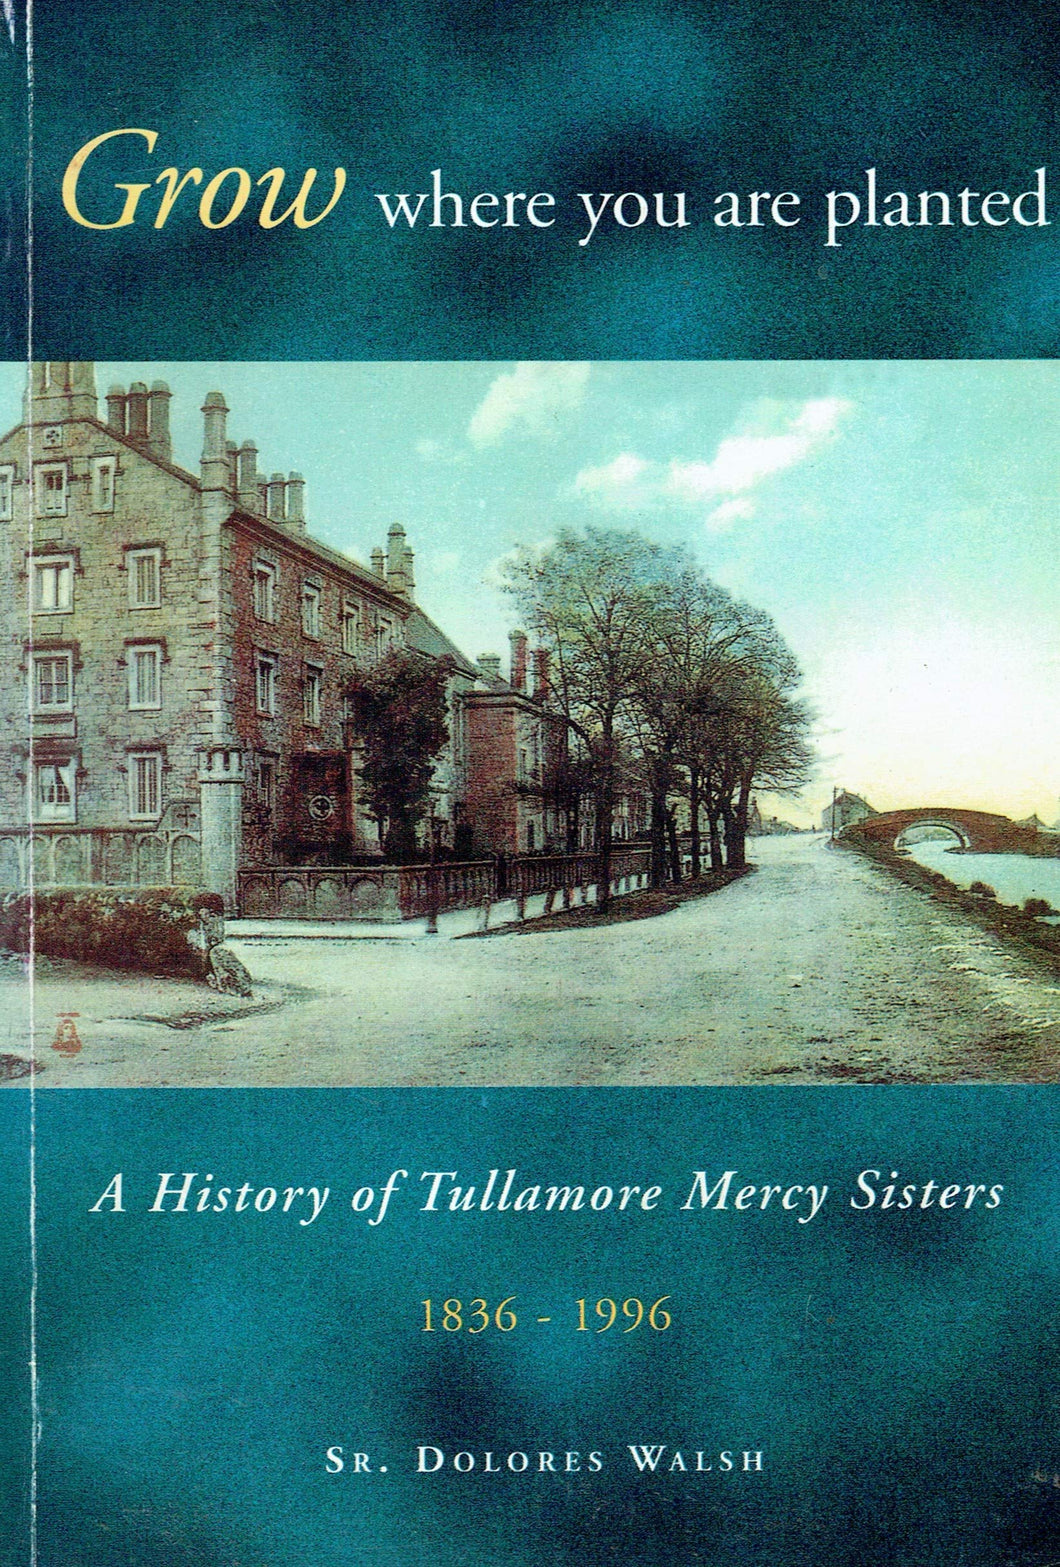 Grow Where You Are Planted: a History of Tullamore Mercy Sisters, 1836 - 1996